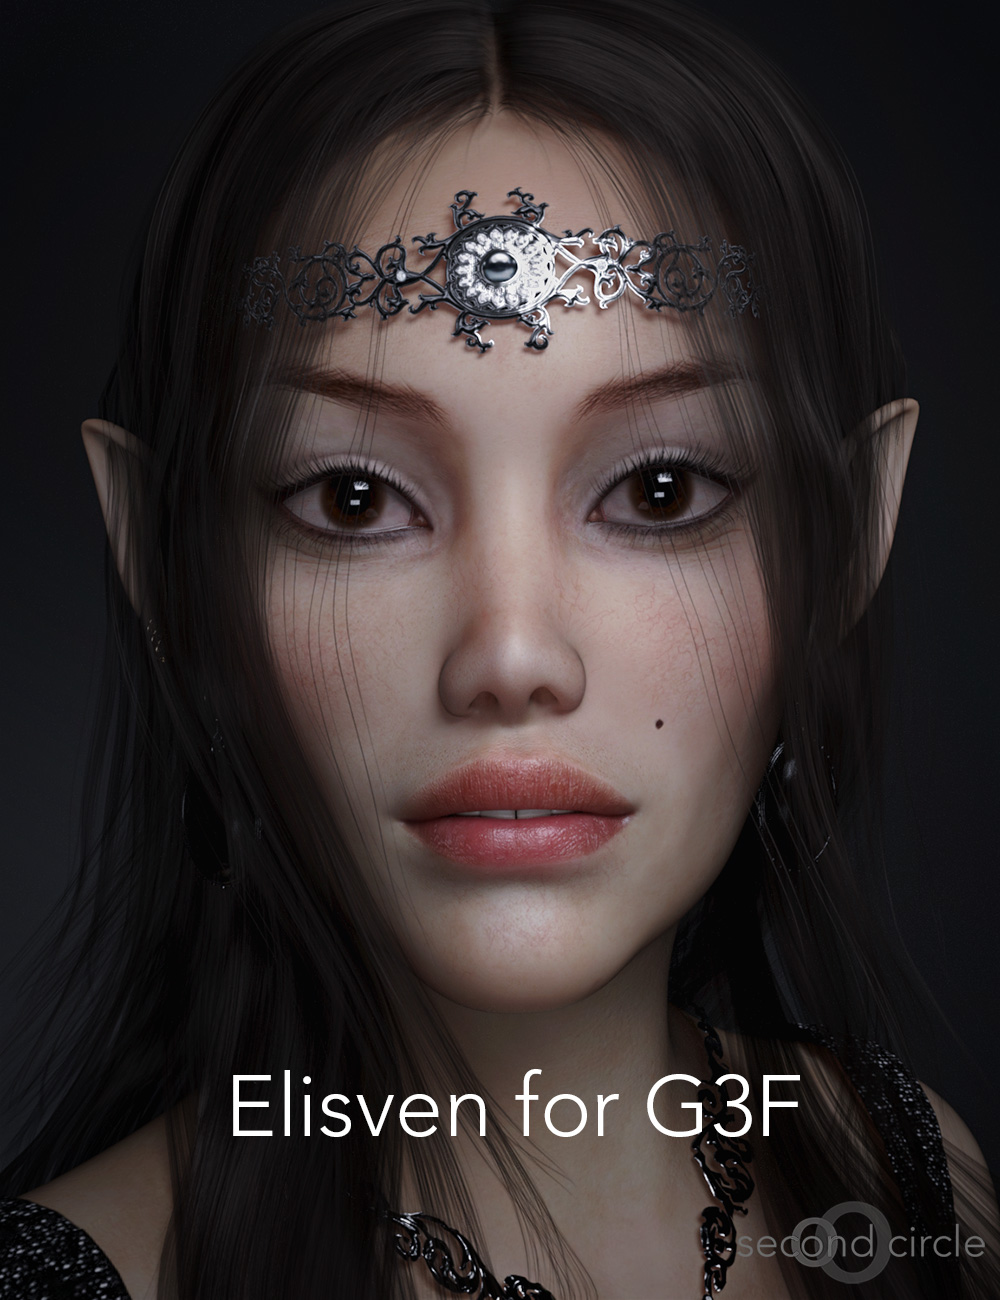 Elisven for G3F by secondcircle